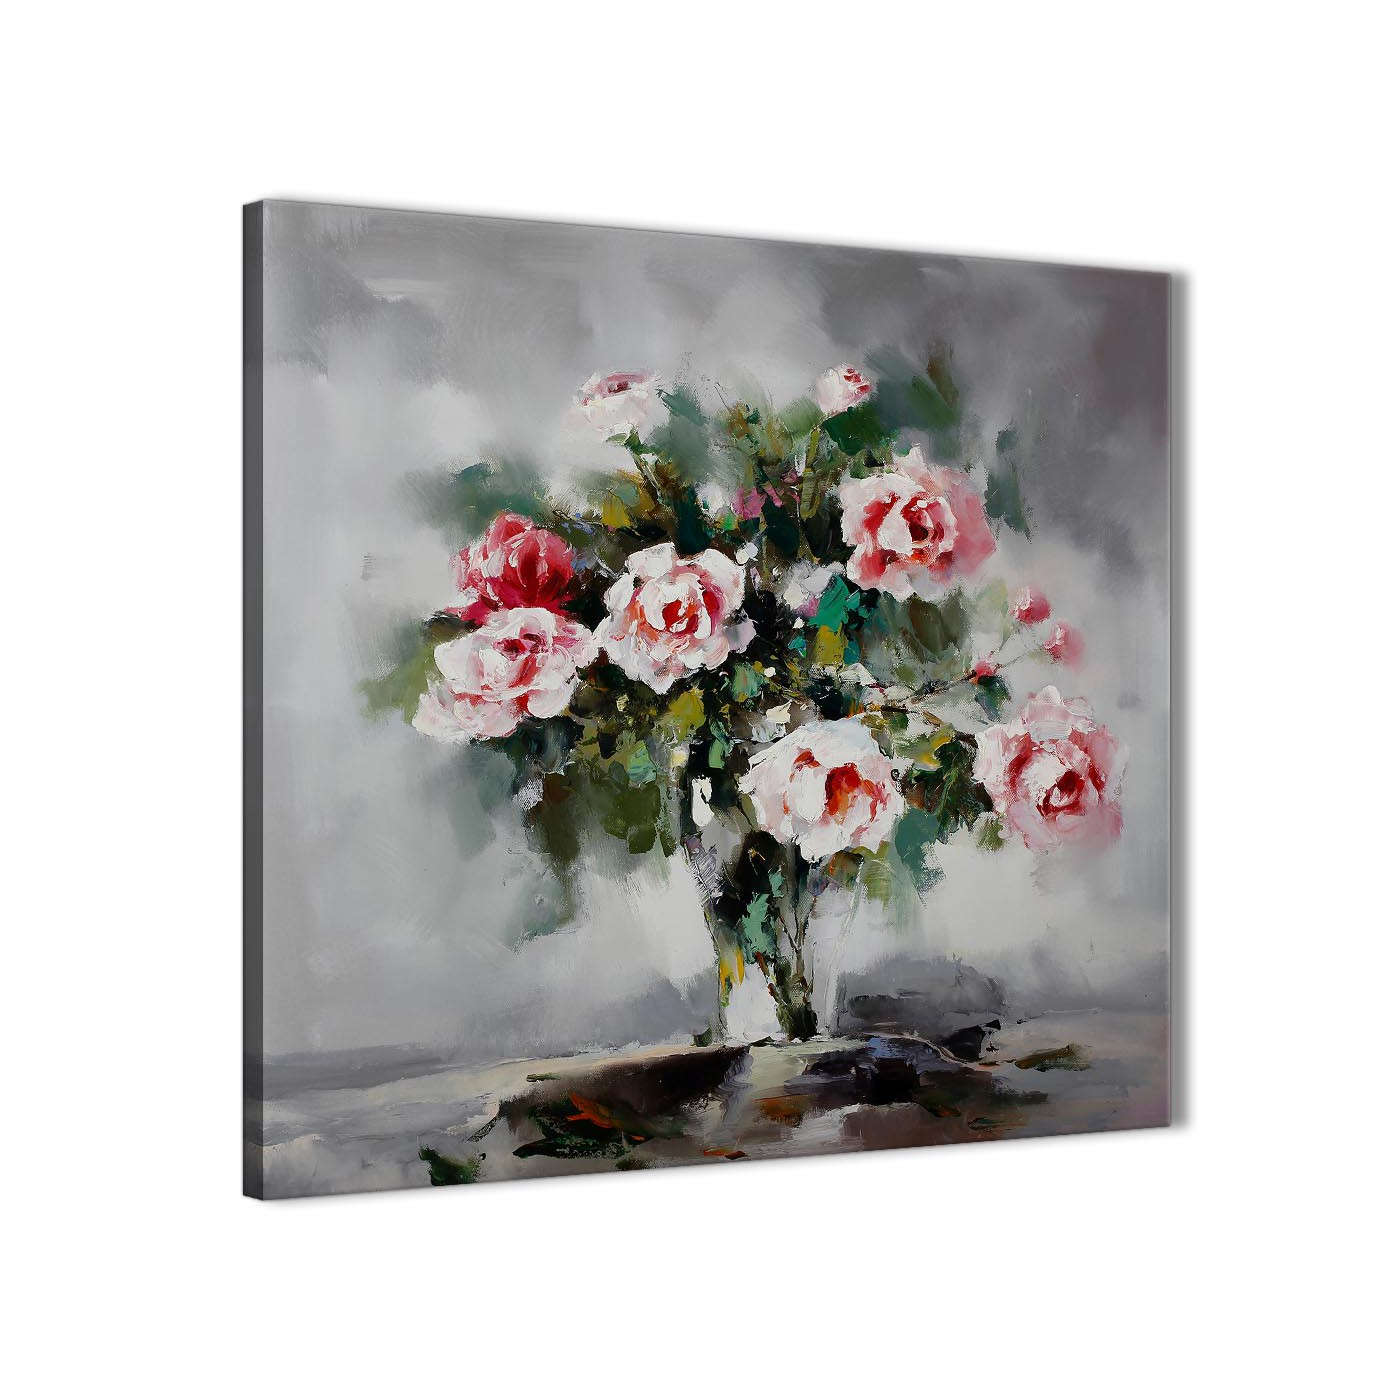 Pink grey flowers painting abstract living room canvas wall art modern pink grey flowers painting abstract dining room canvas wall art accessories 1s442l 79cm square display gallery item 1 mightylinksfo